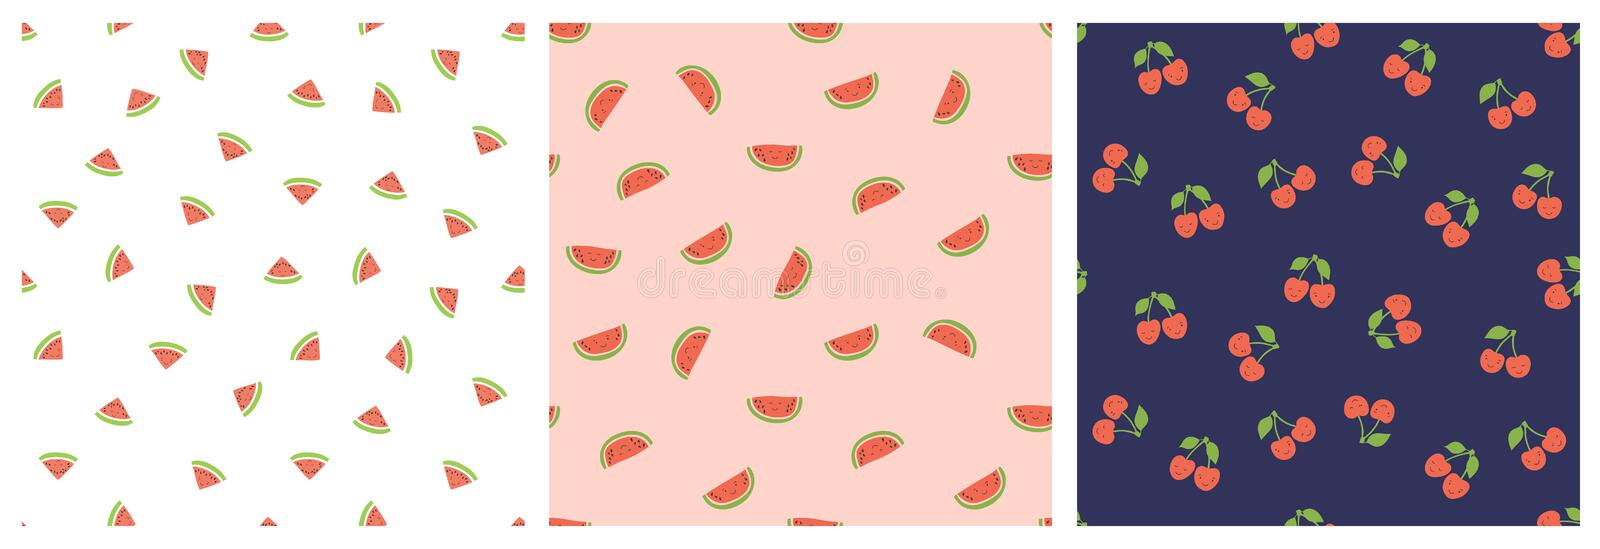 Kid`s seamless pattern. Smiling watermelon and cherry. Exotic fruit fashion print. Design elements for baby textile or clothes. stock illustration